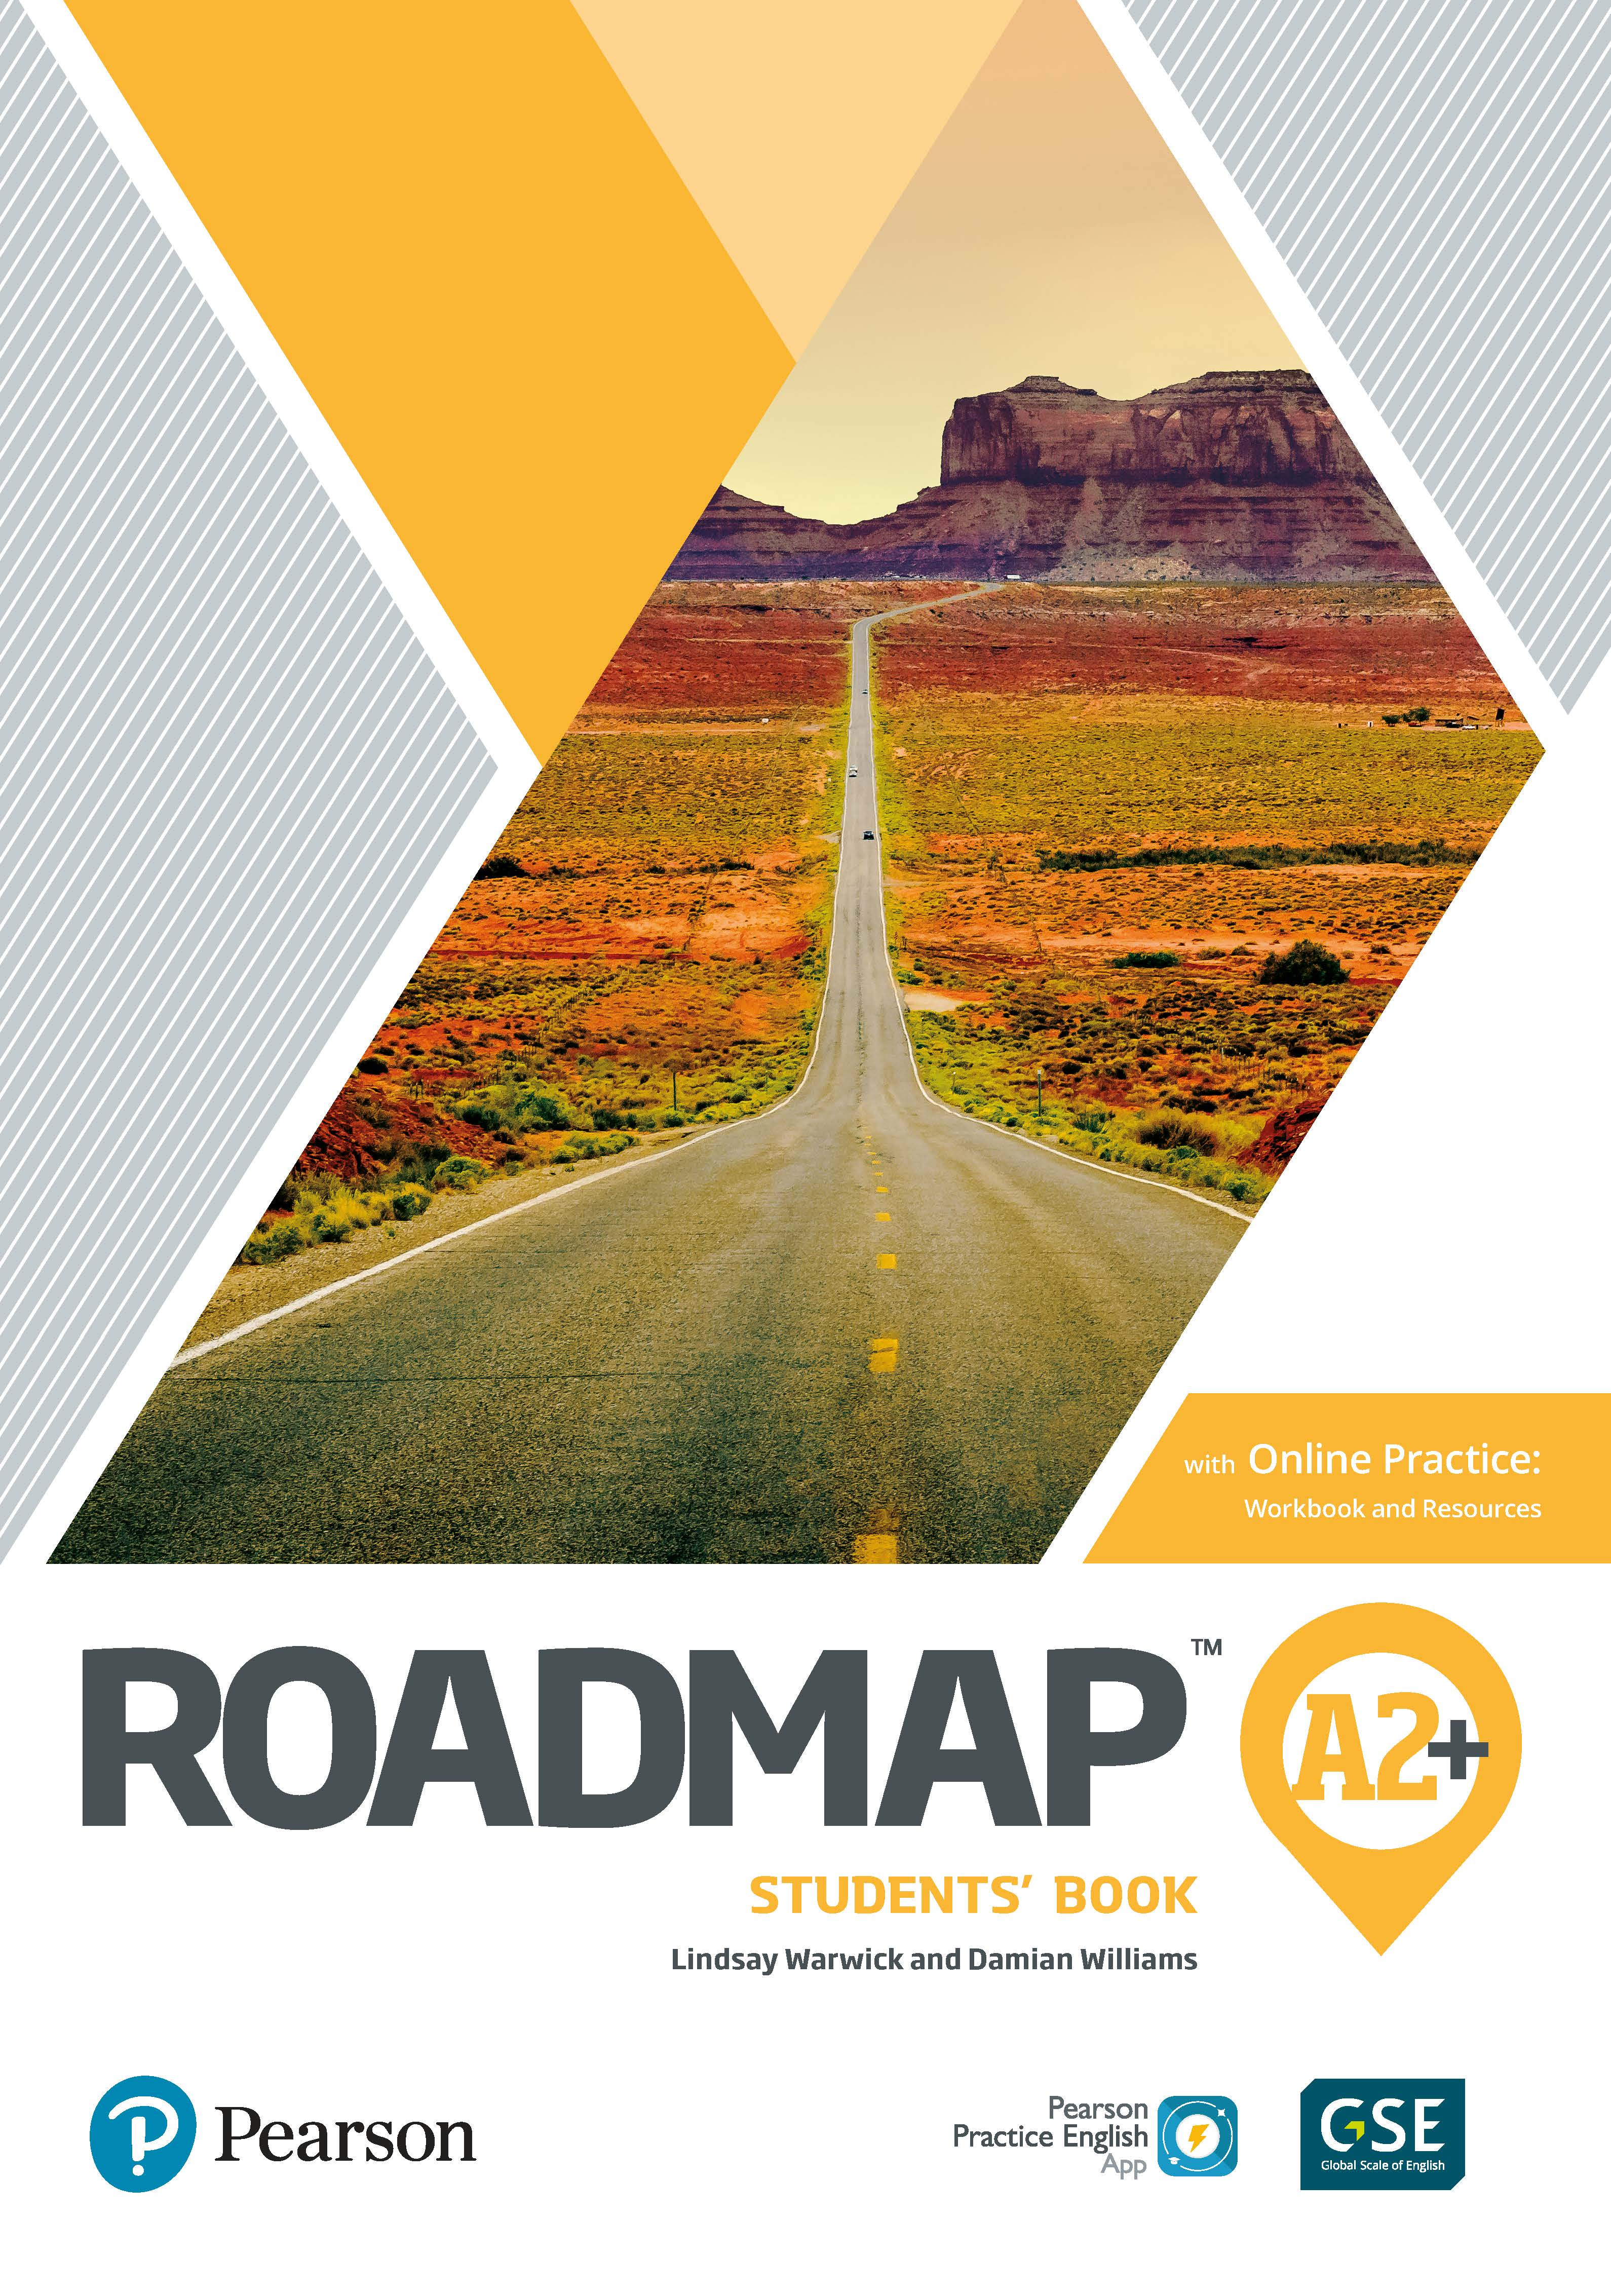 roadmap a2+ workbook